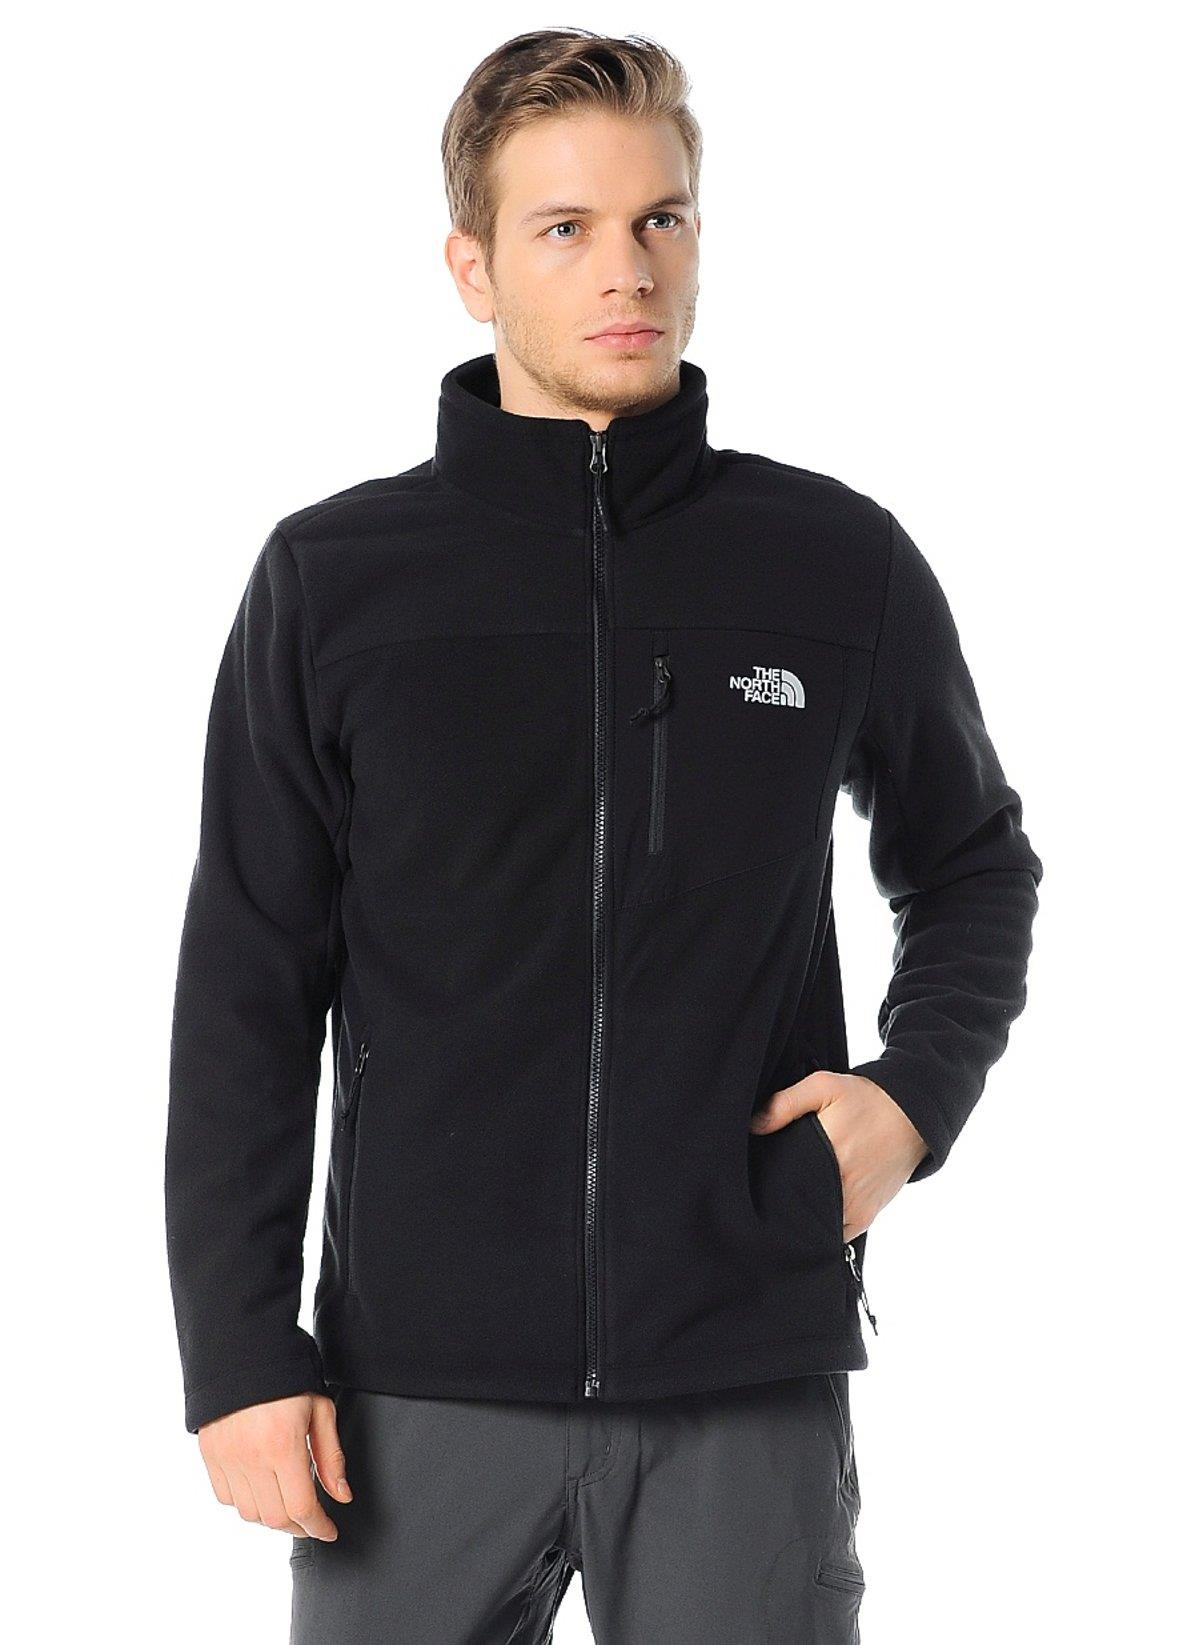 The North Face Veste Chimborazo FZ Erkek Ceketi T0Cc6Akx7